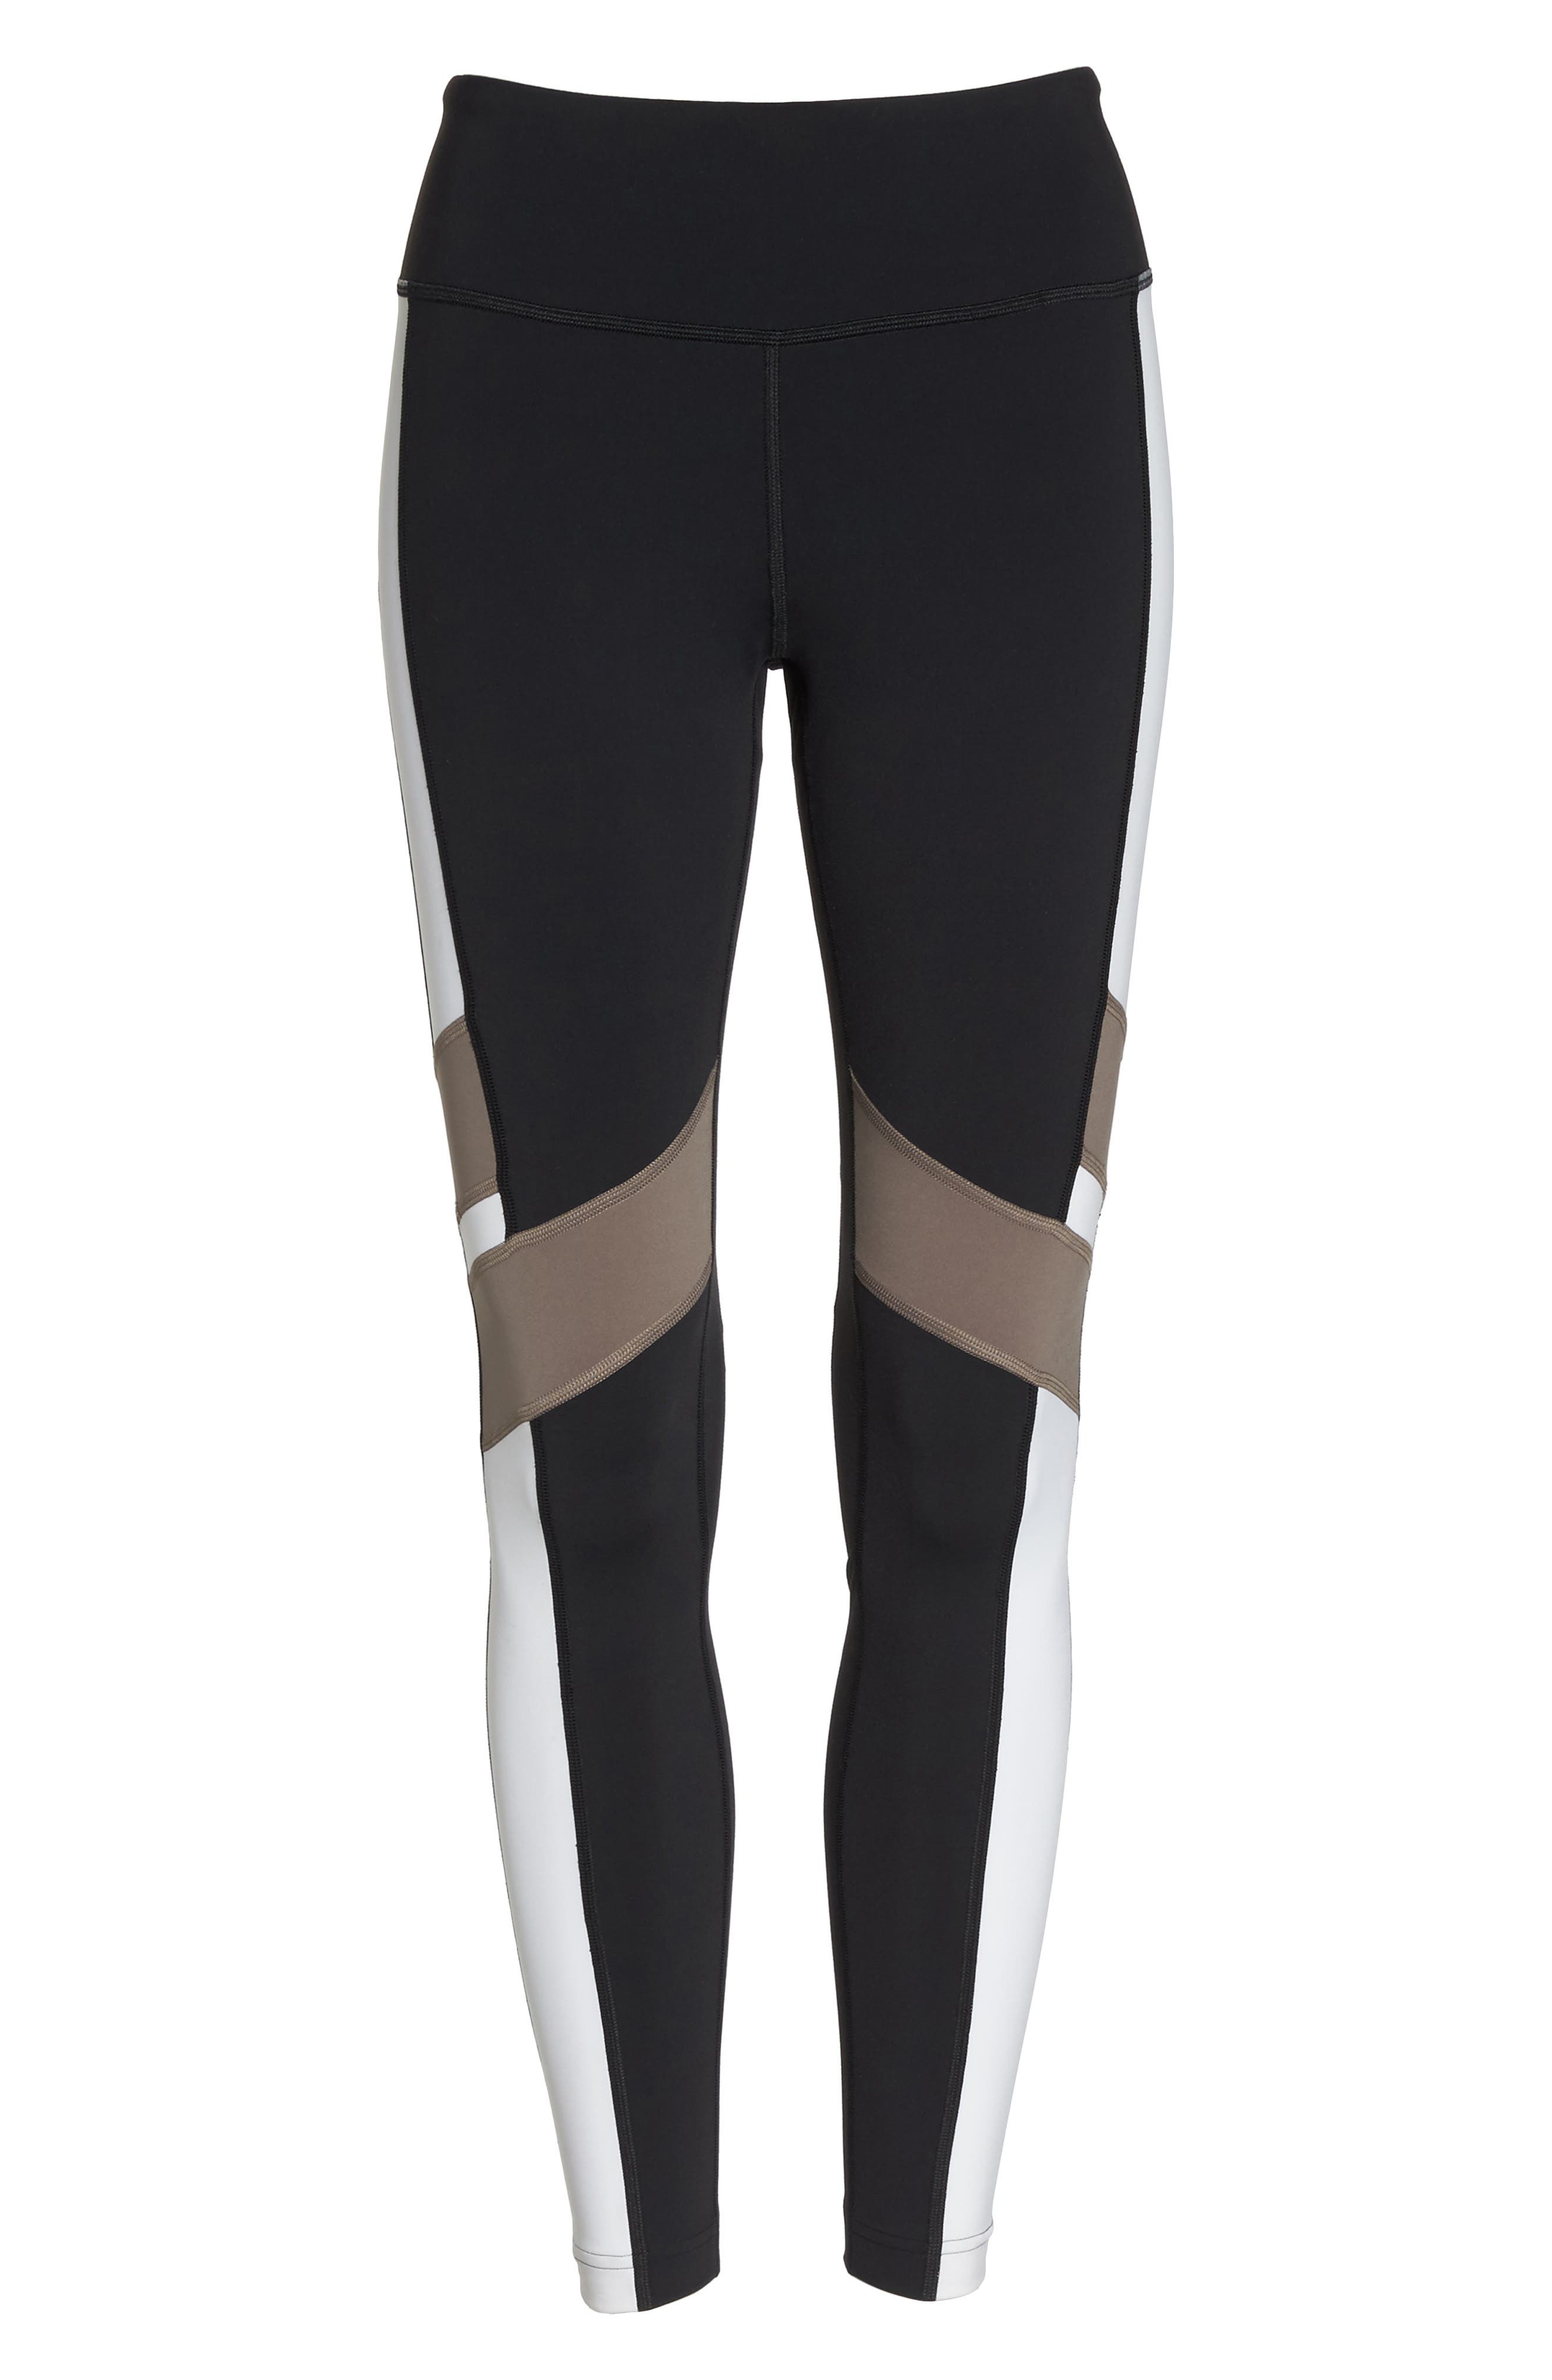 Reebox Lux Tights,                             Alternate thumbnail 7, color,                             005